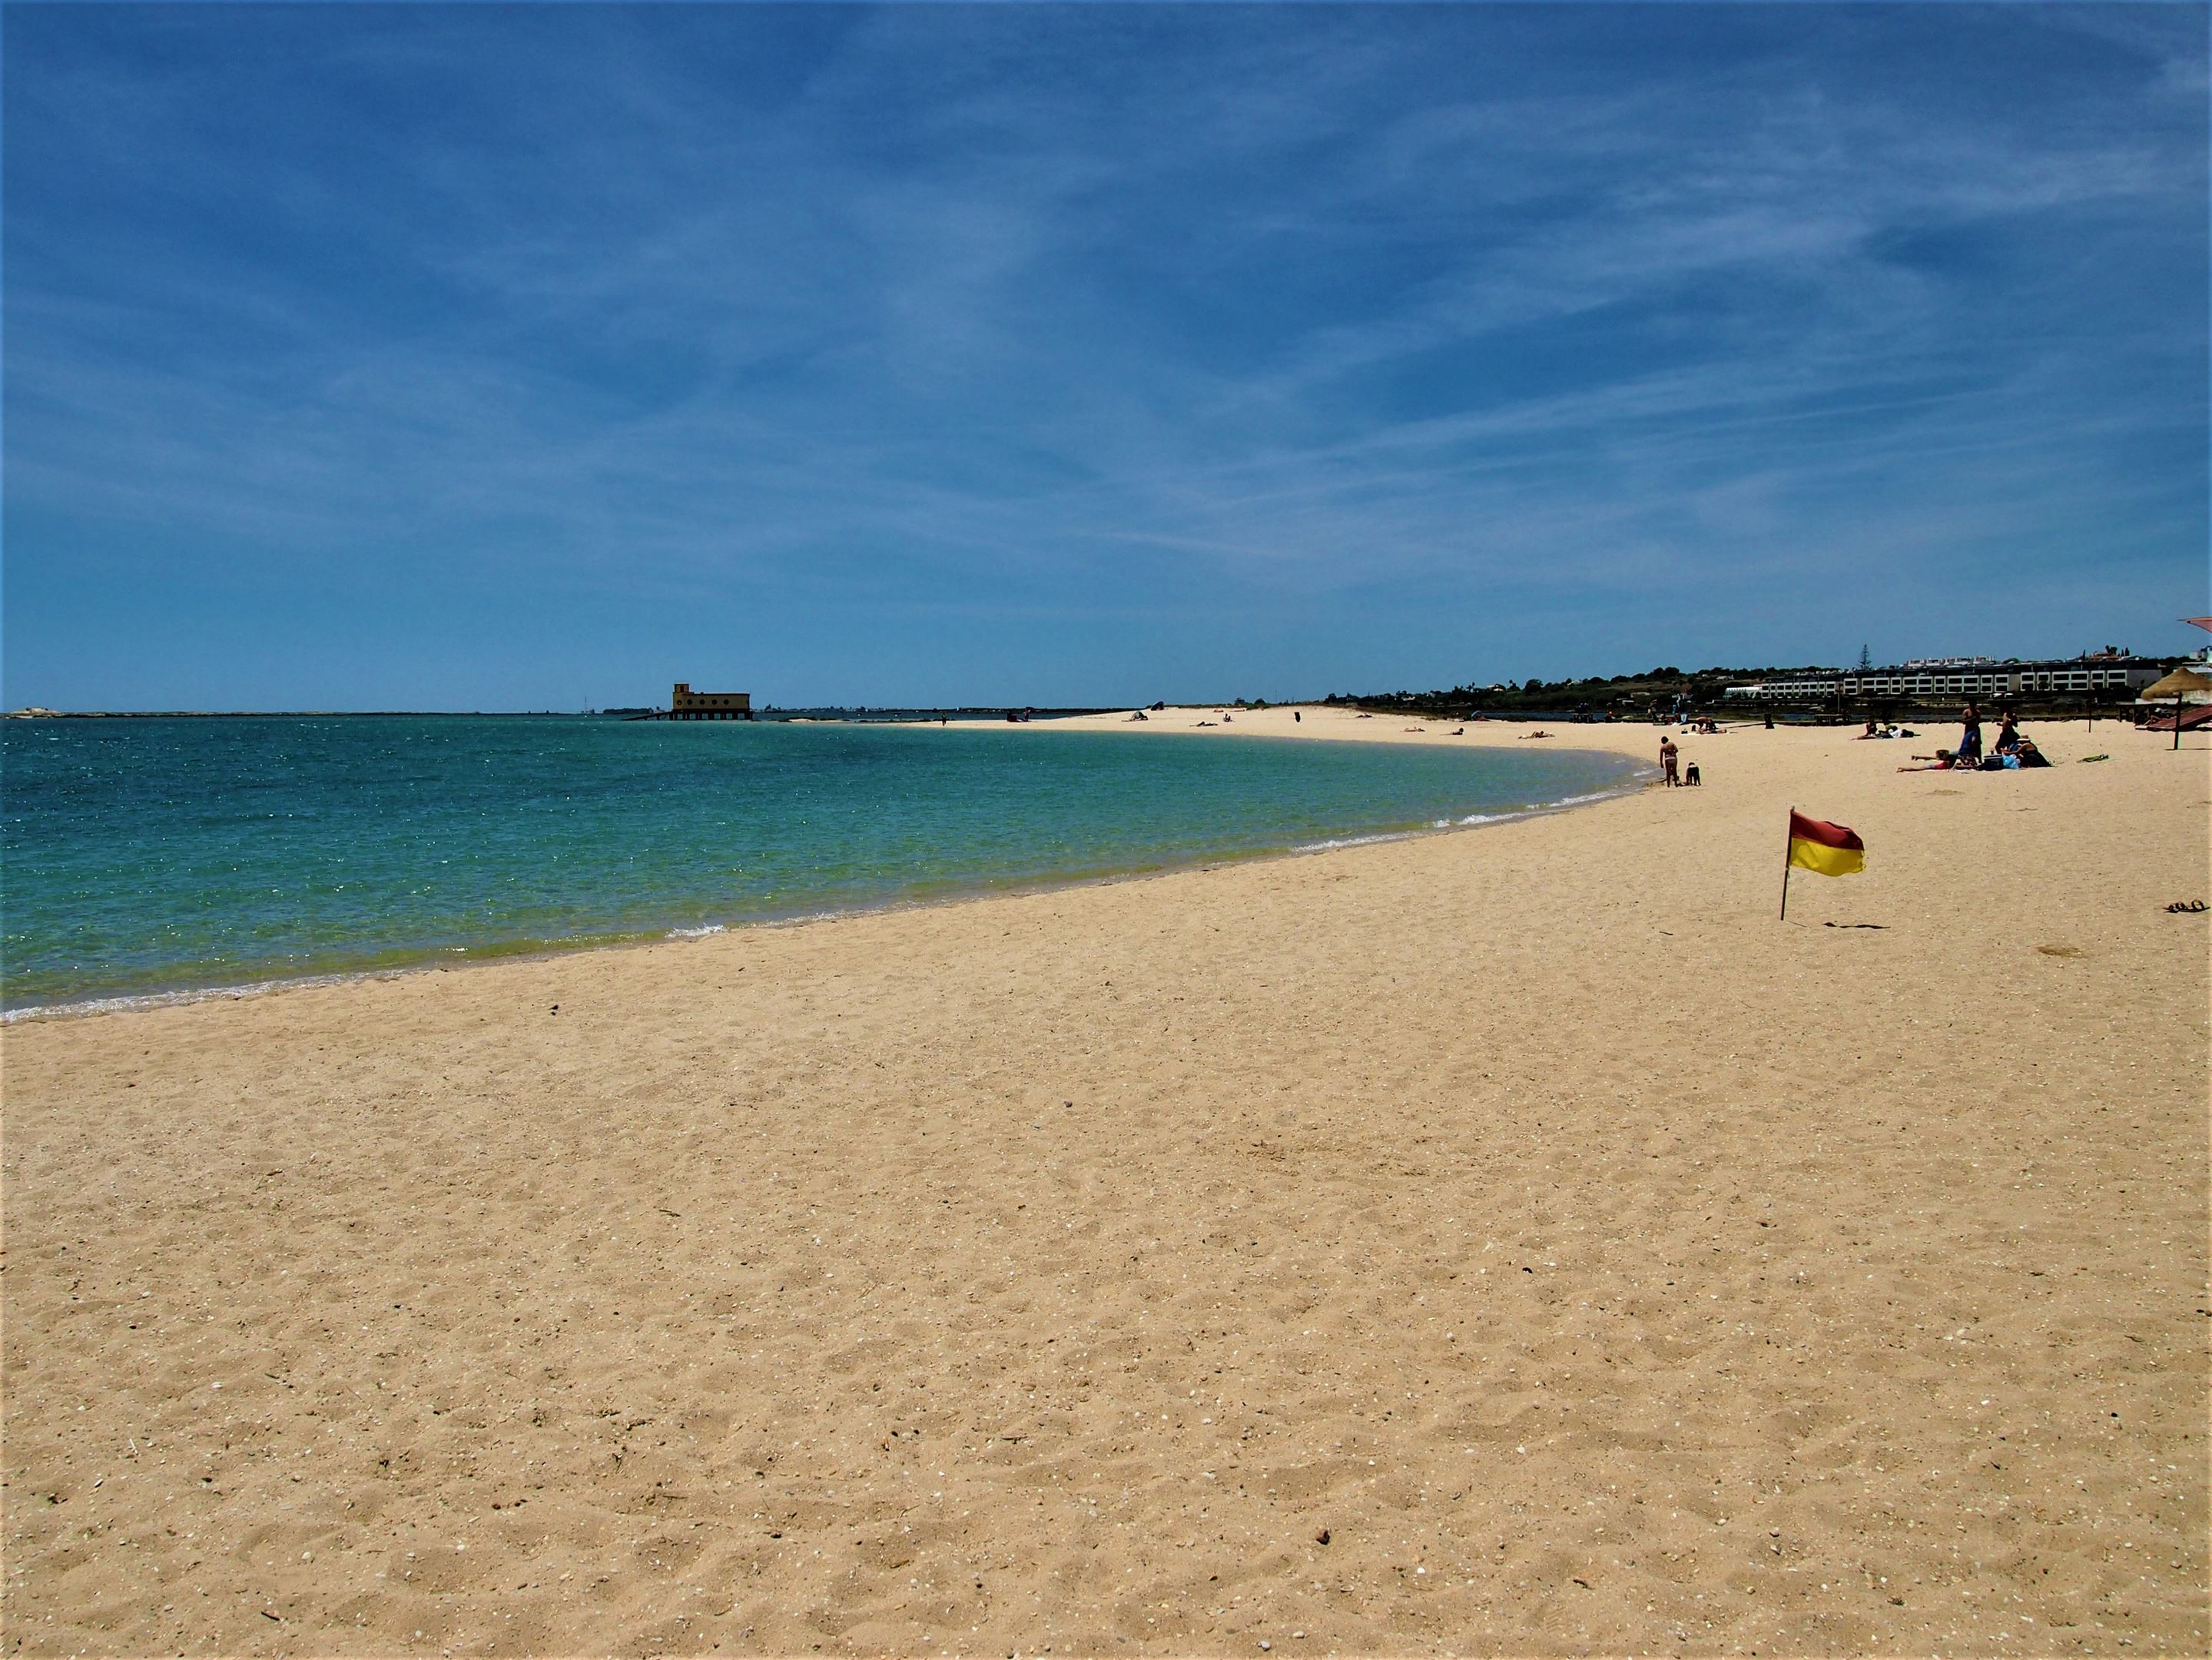 Praia da Fuseta-Ria, the beach at Fuseta